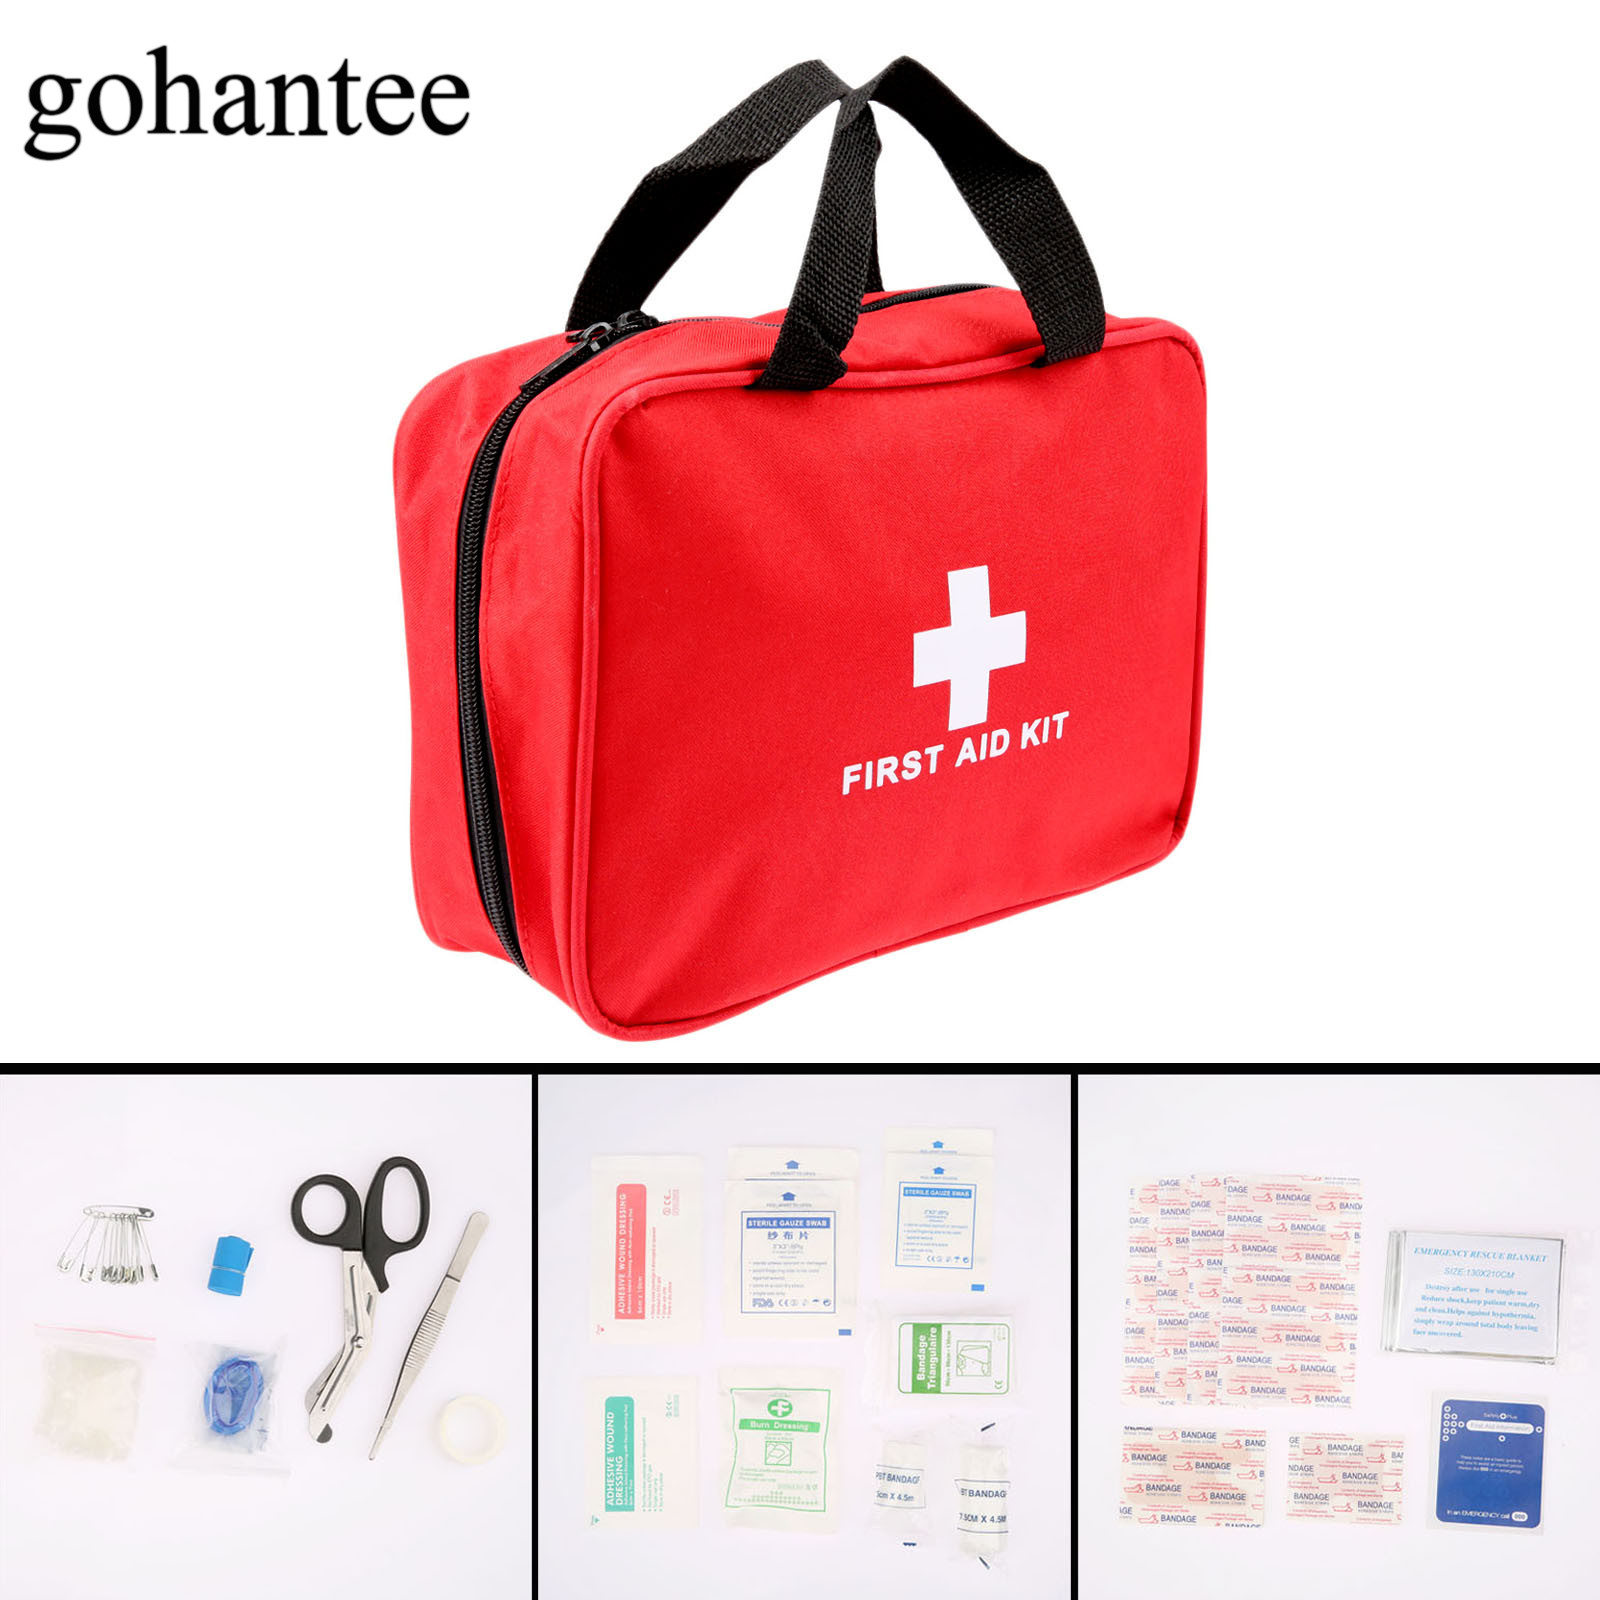 58pcs/Pack (15kinds) Portable First Aid Kit Military First Aid Pouch Outdoor Hiking Travel Home Car Emergency Treatment Pack Bag new fashion waterproof outdoor travel home portable first aid bag carry small medical emergency kit first aid contains 11 kinds